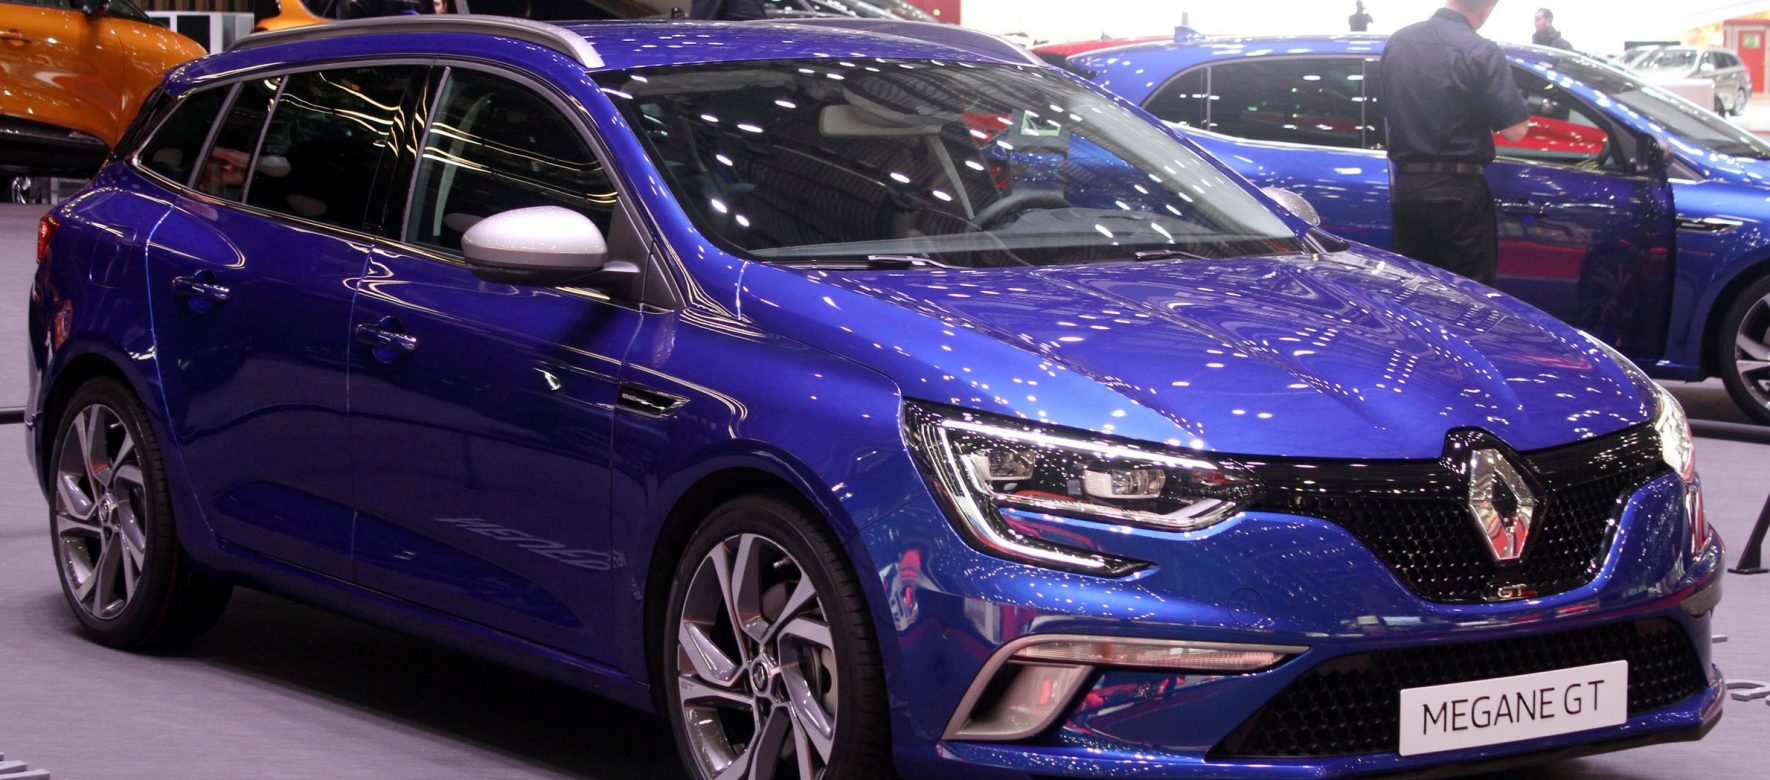 Why is Renault investing into intelligent car system in Israel? 2